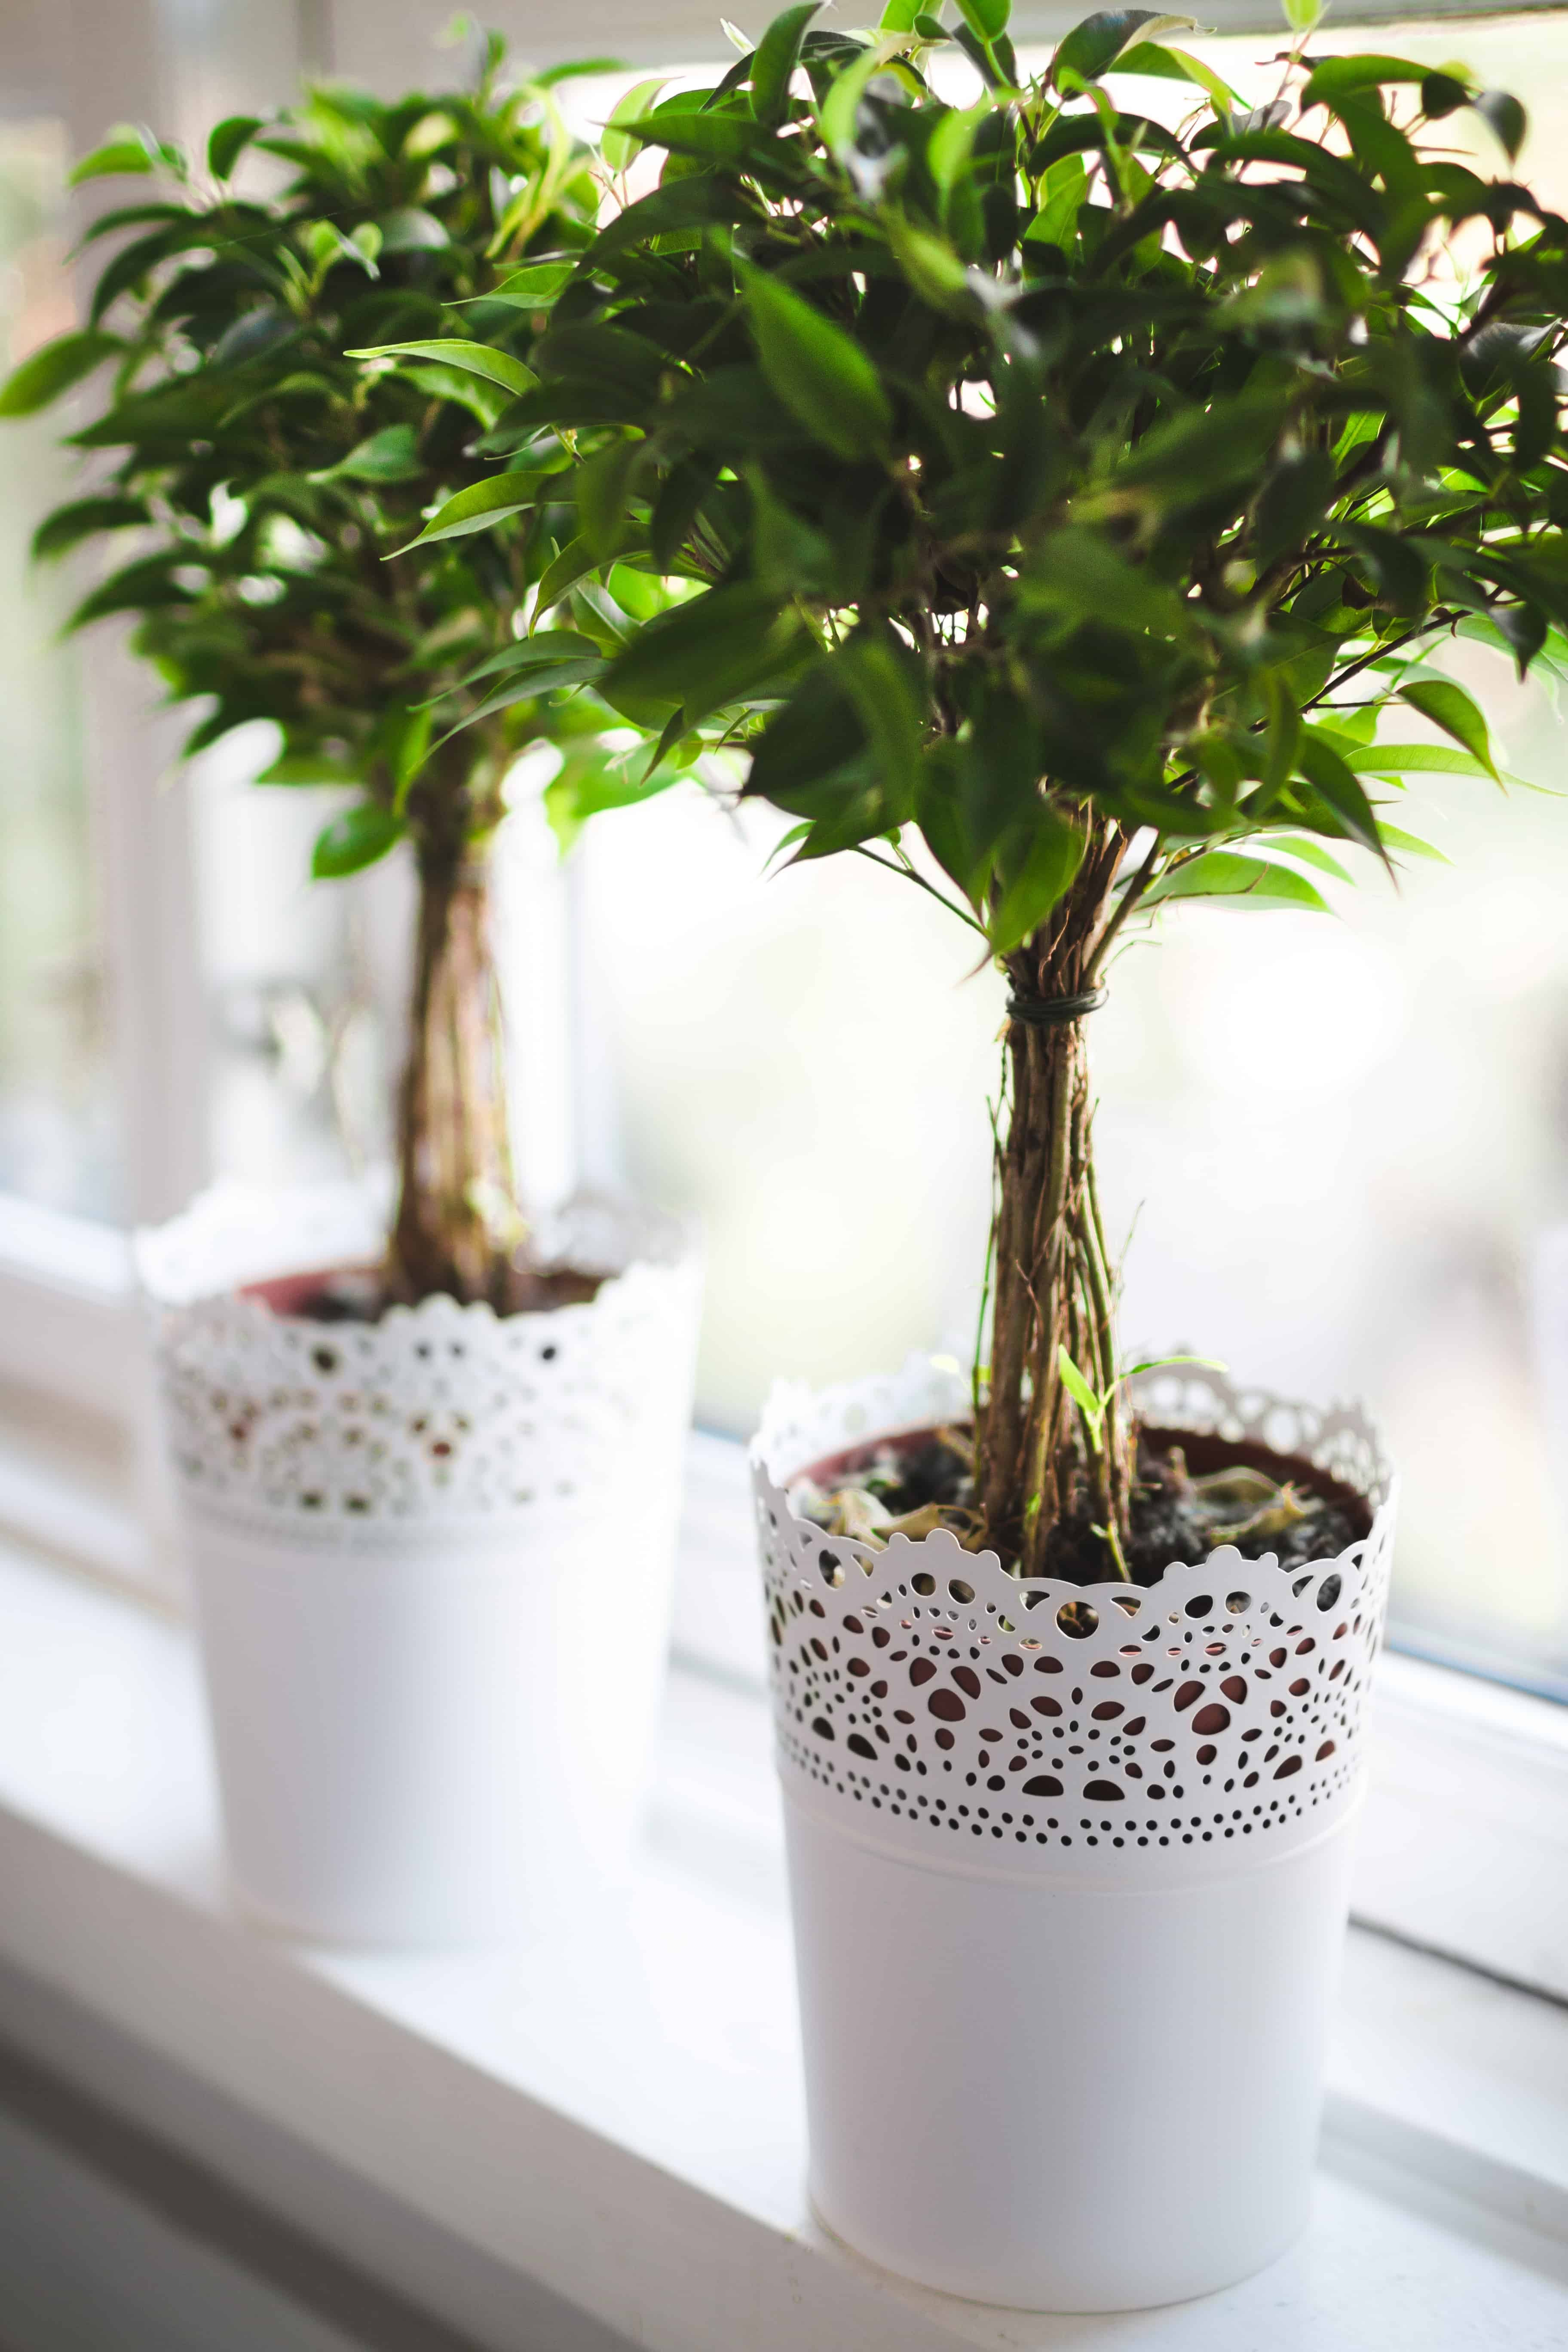 two small ficus trees in white lace planters